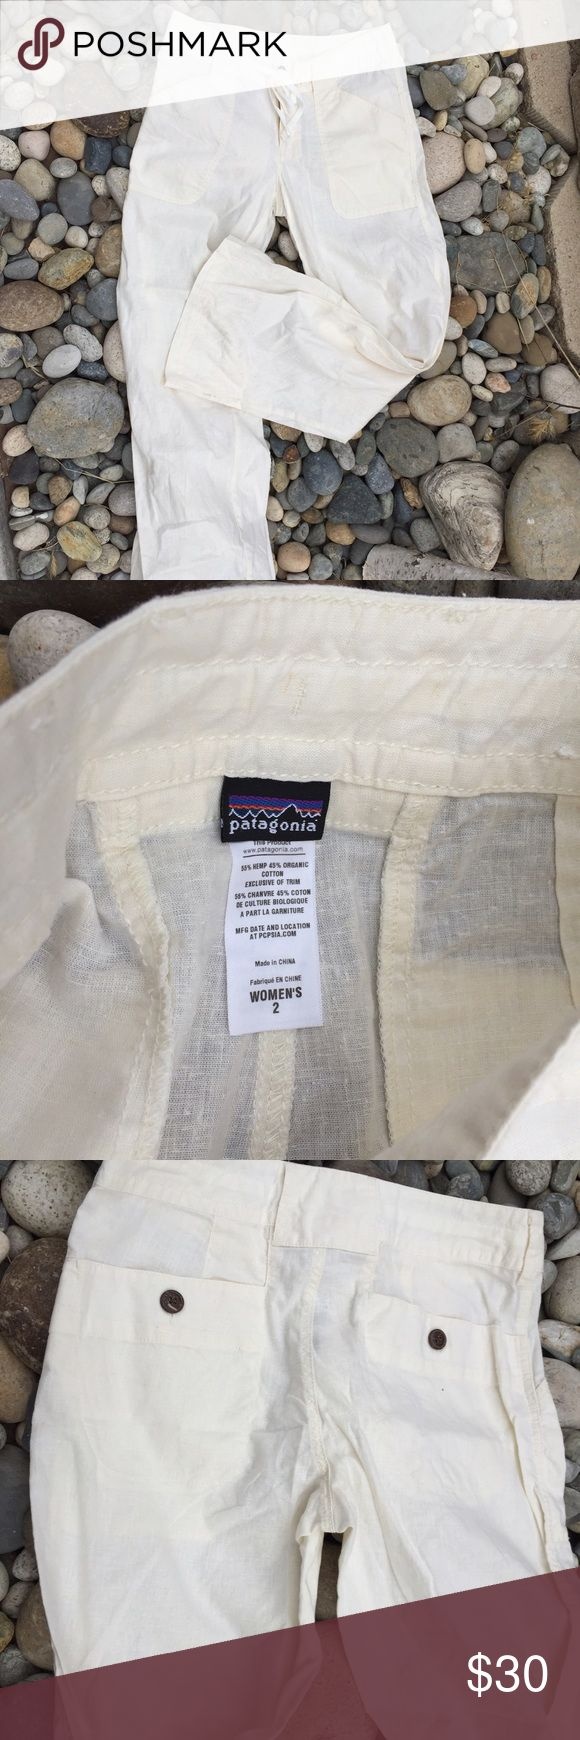 Patagonia linen pants NWT Linen Patagonia pants. Button and zipper. Never worn. Patagonia Pants Trousers